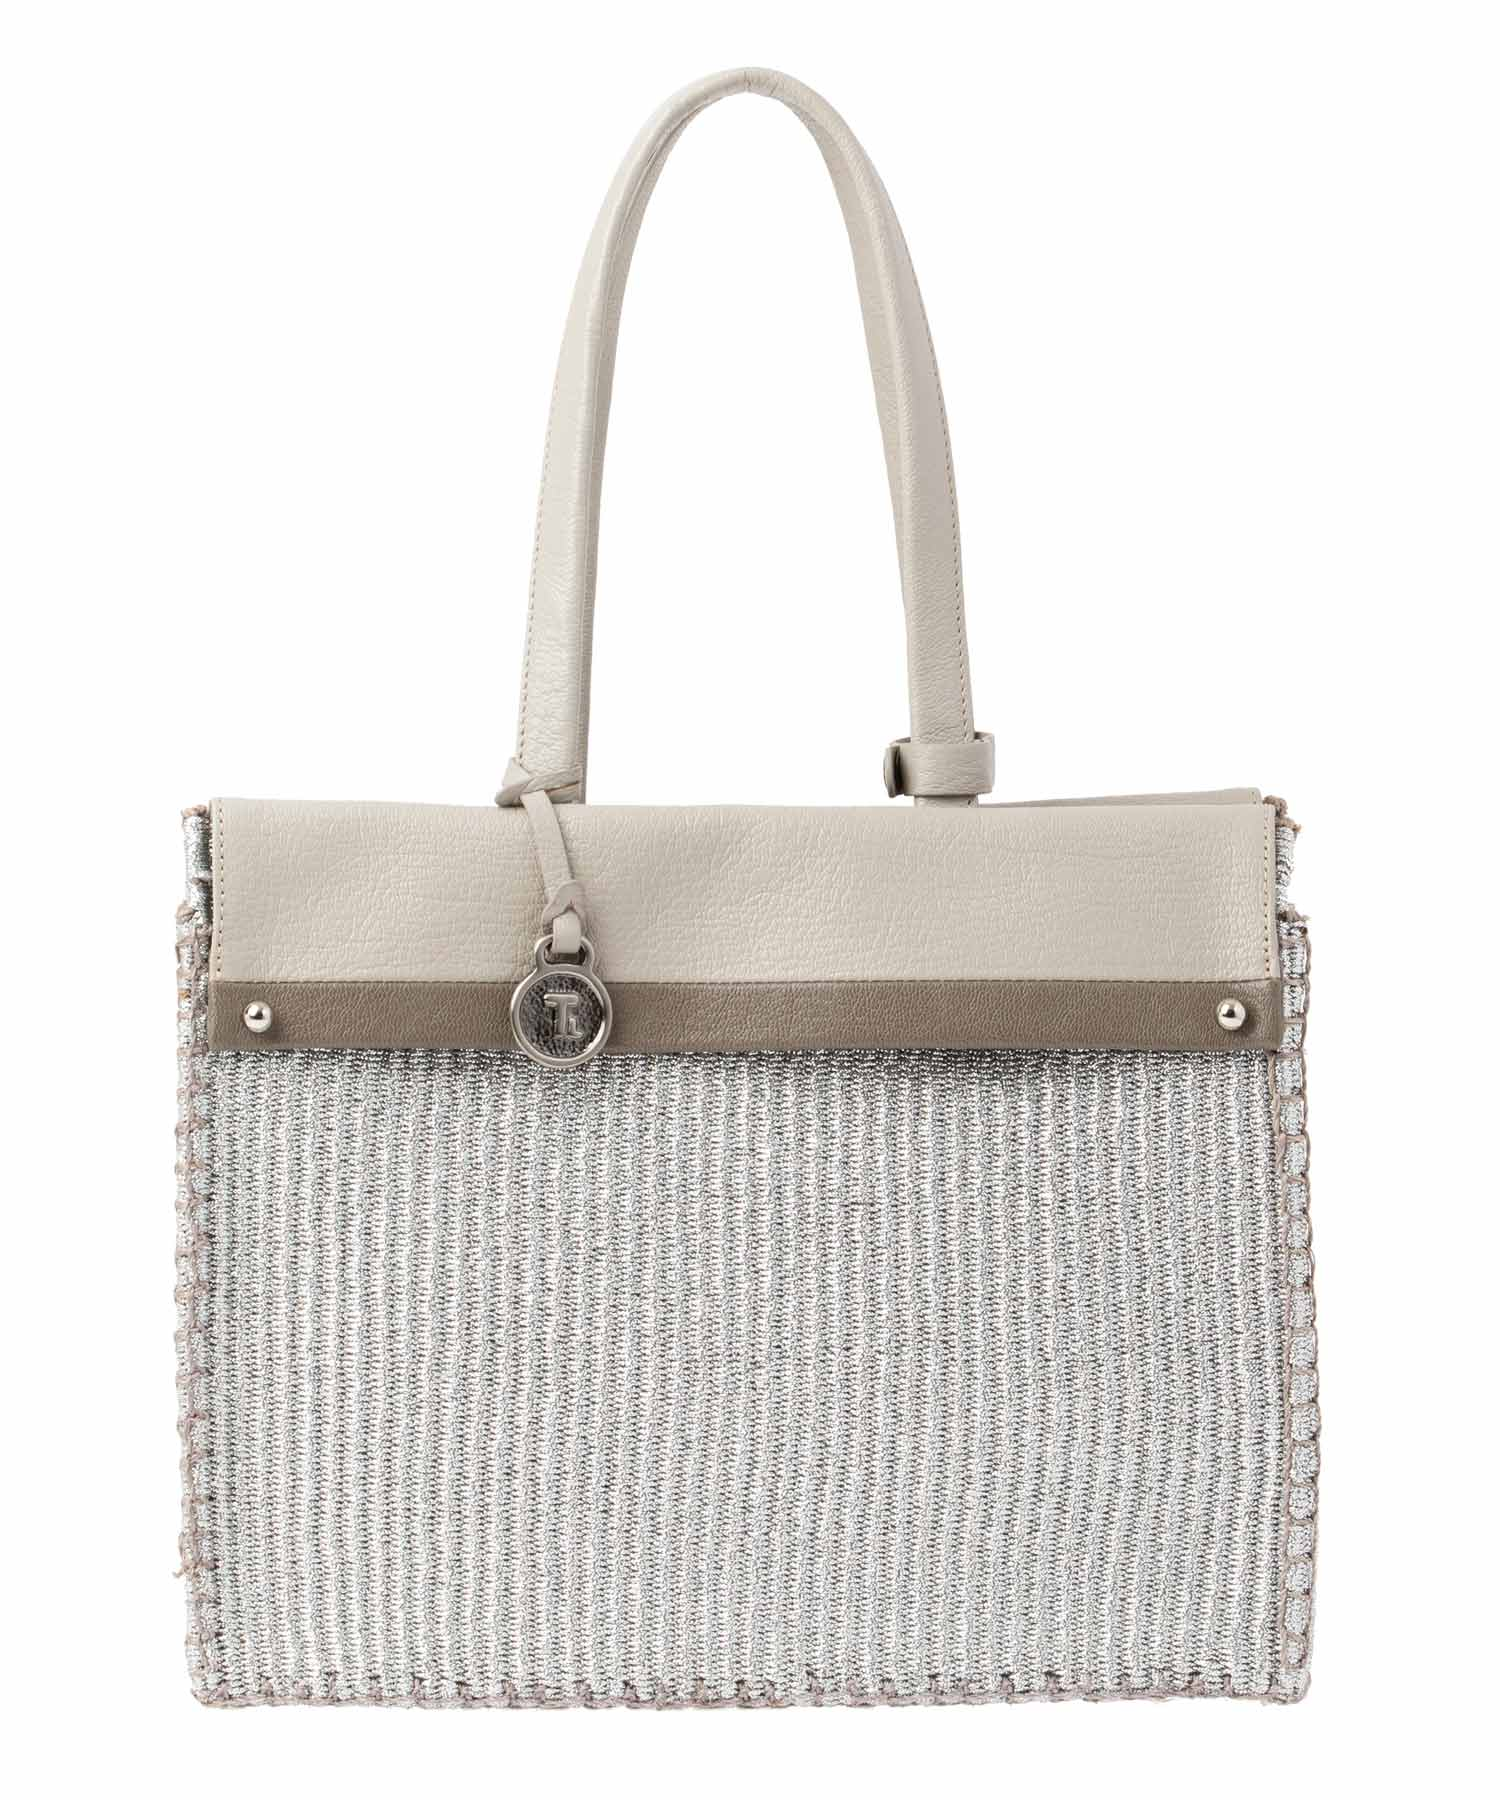 Hybrid Basket Metallic (Square Tote)